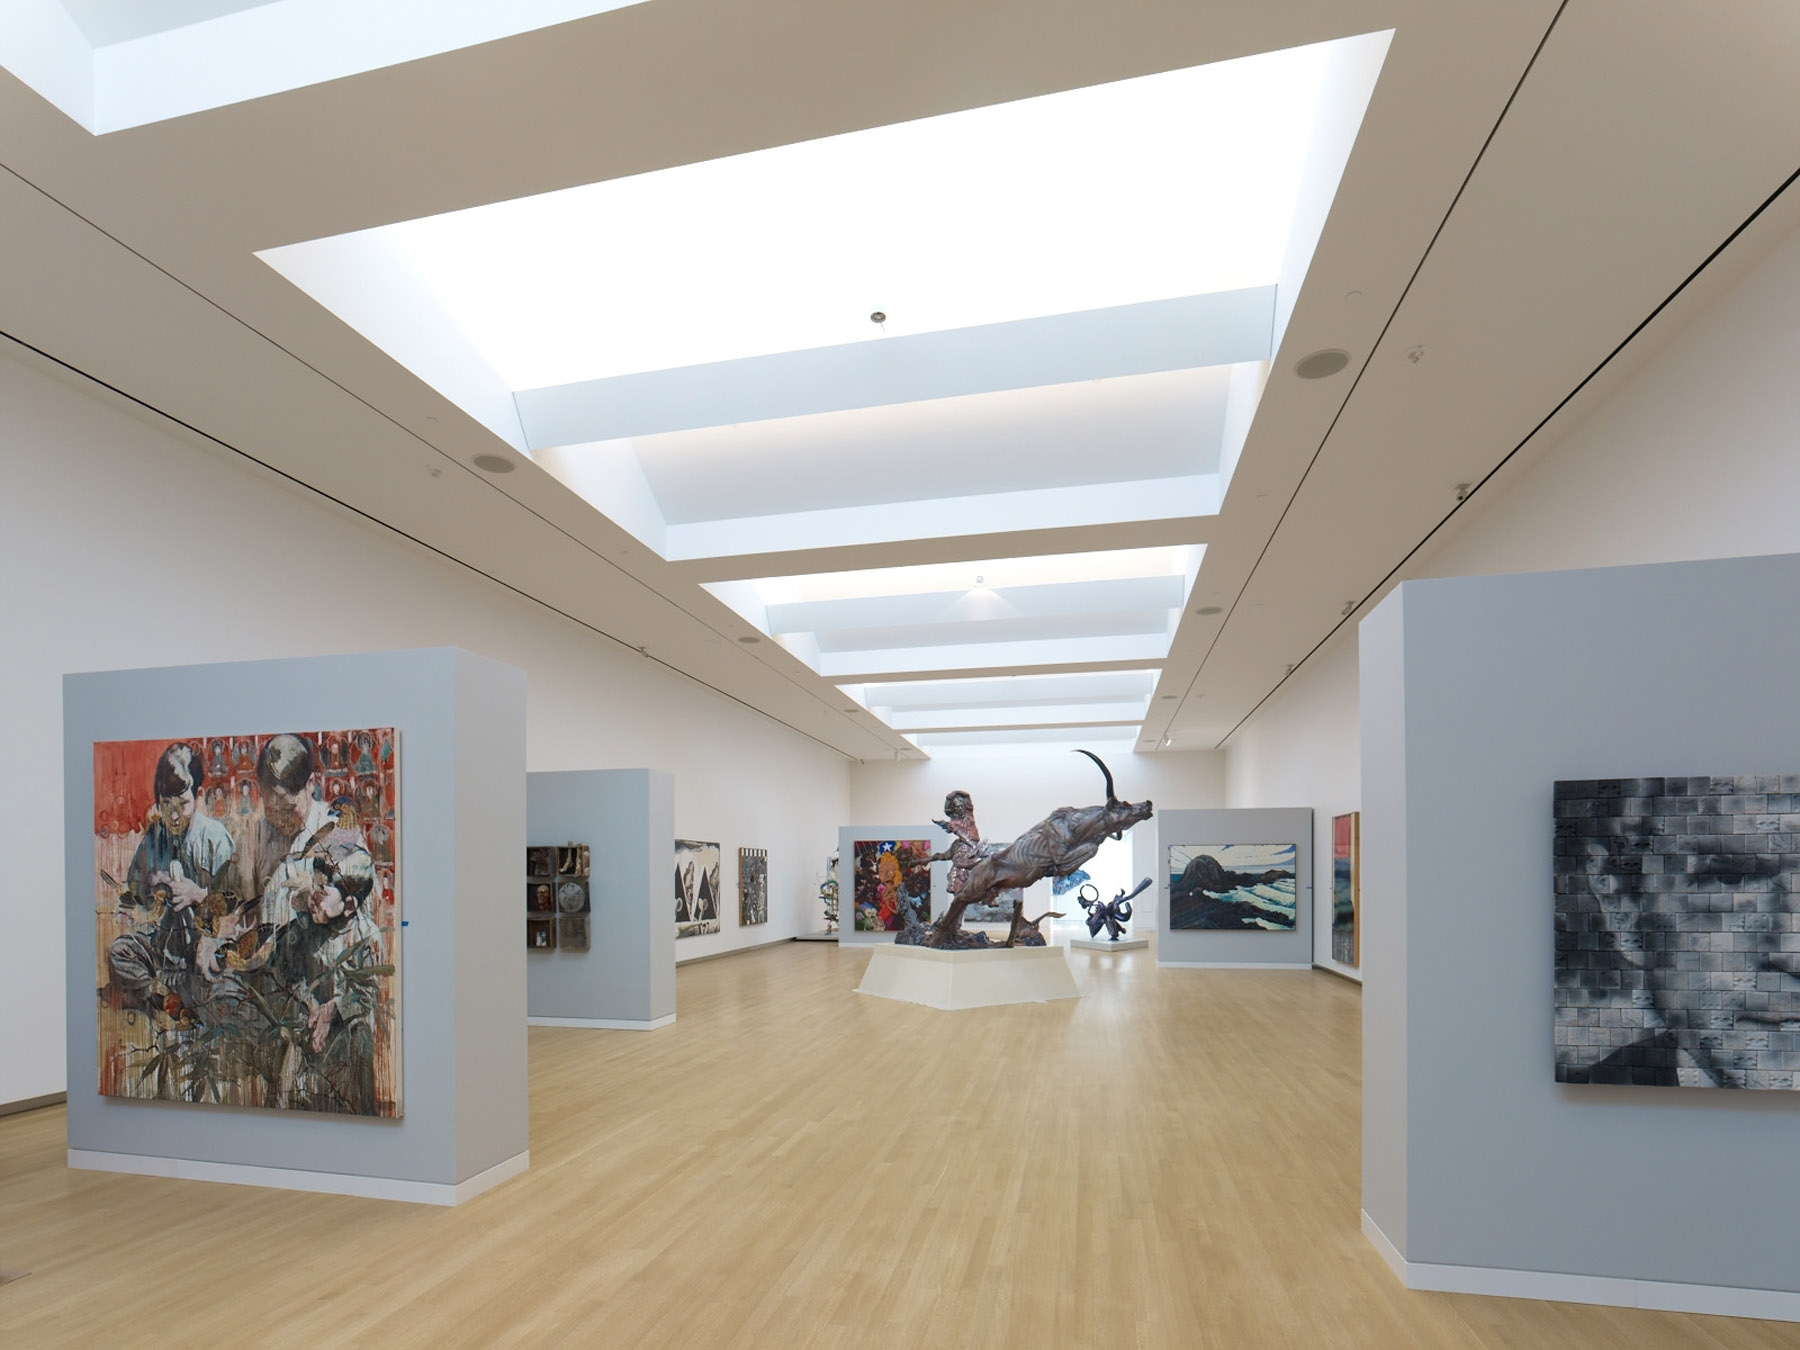 The Crocker includes a number of rotating galleries that exhibit works of American and European art, as well as Asian art and works by local artists.